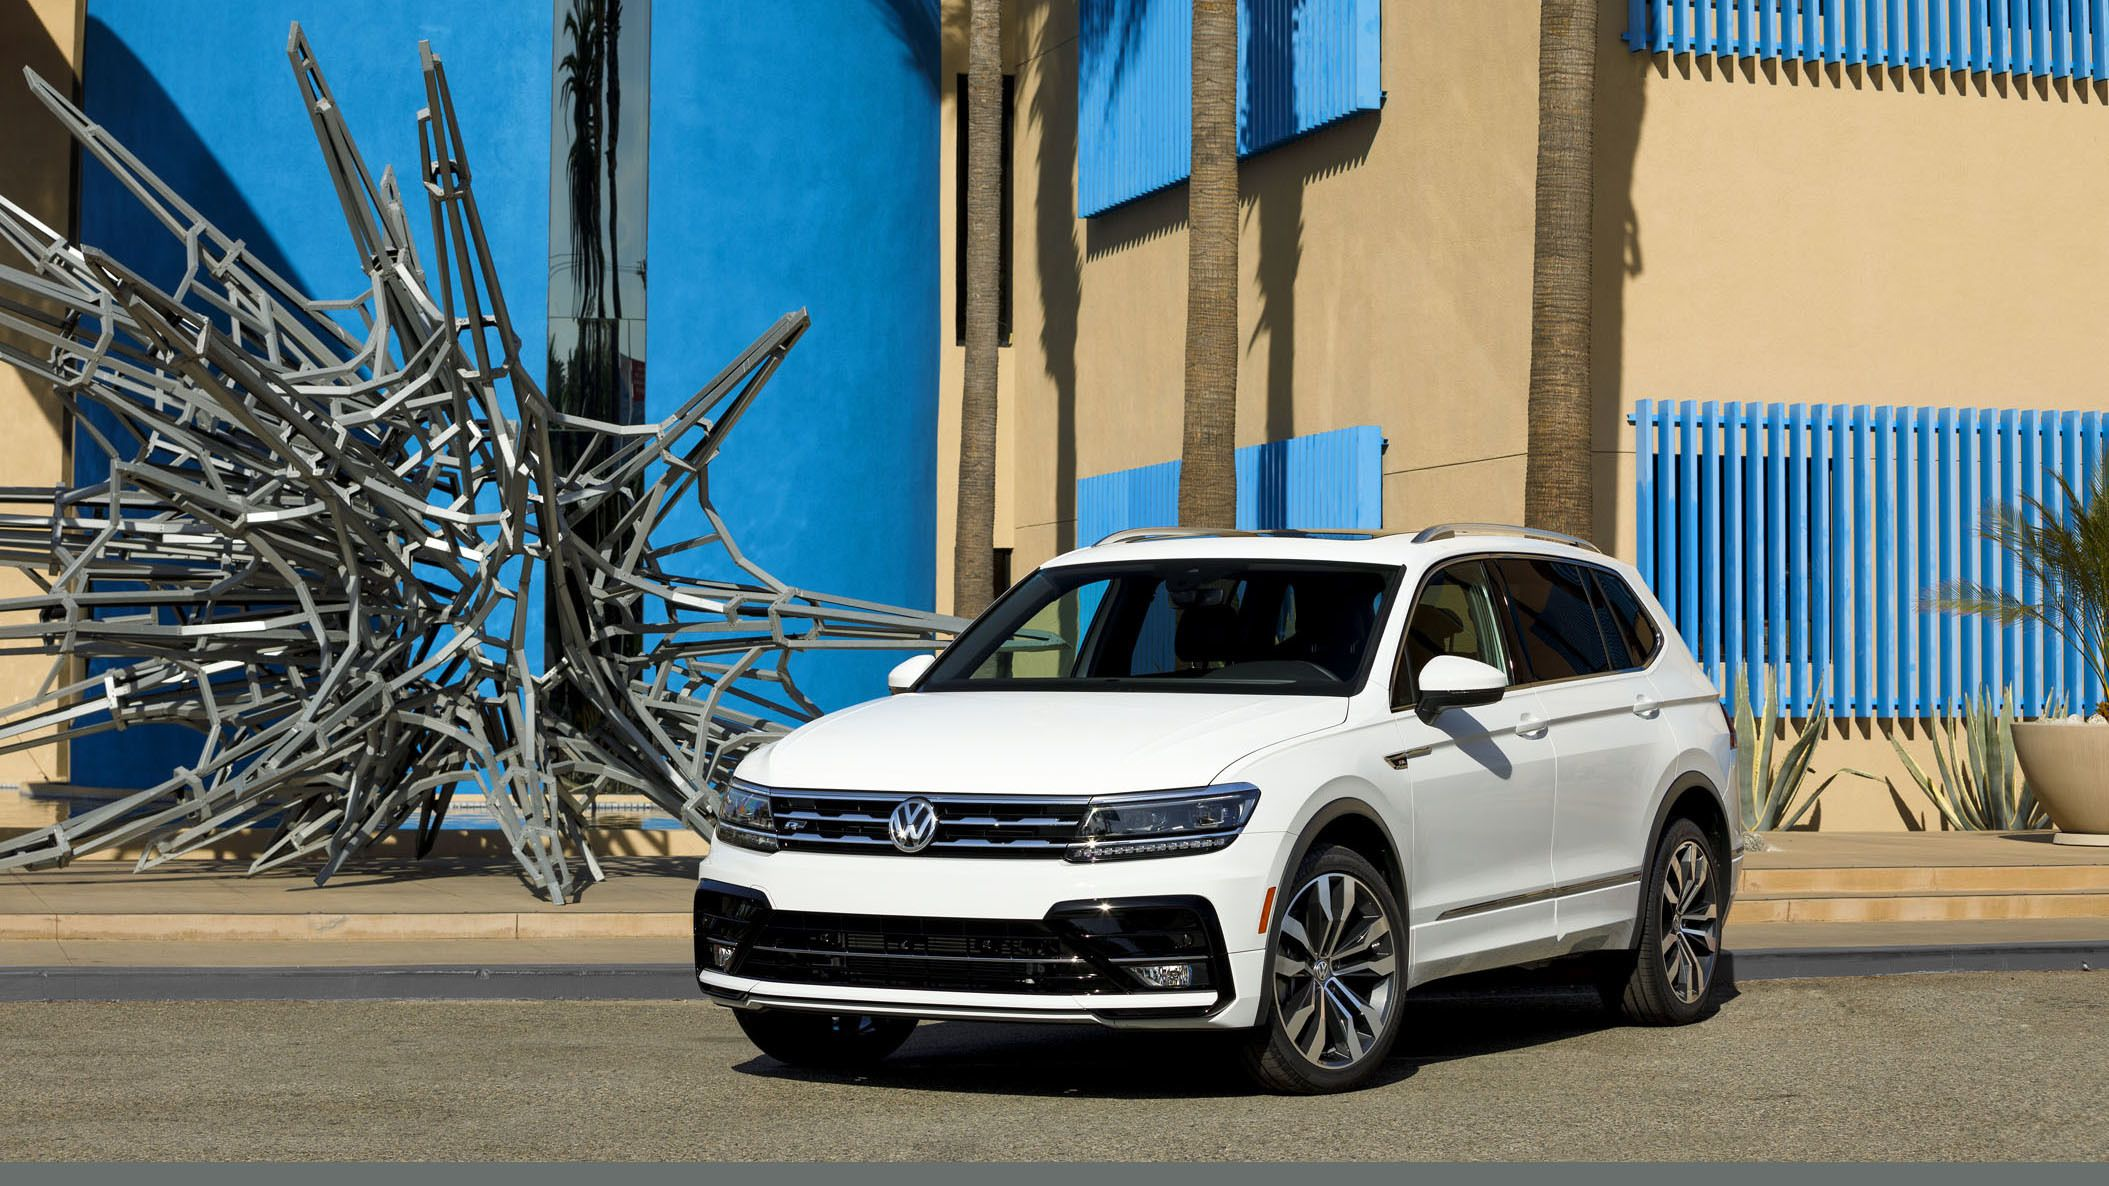 3a579a4a07246b206ce47c55cadf154c Interesting Info About 2018 Vw Tiguan R Line with Mesmerizing Pictures Cars Review